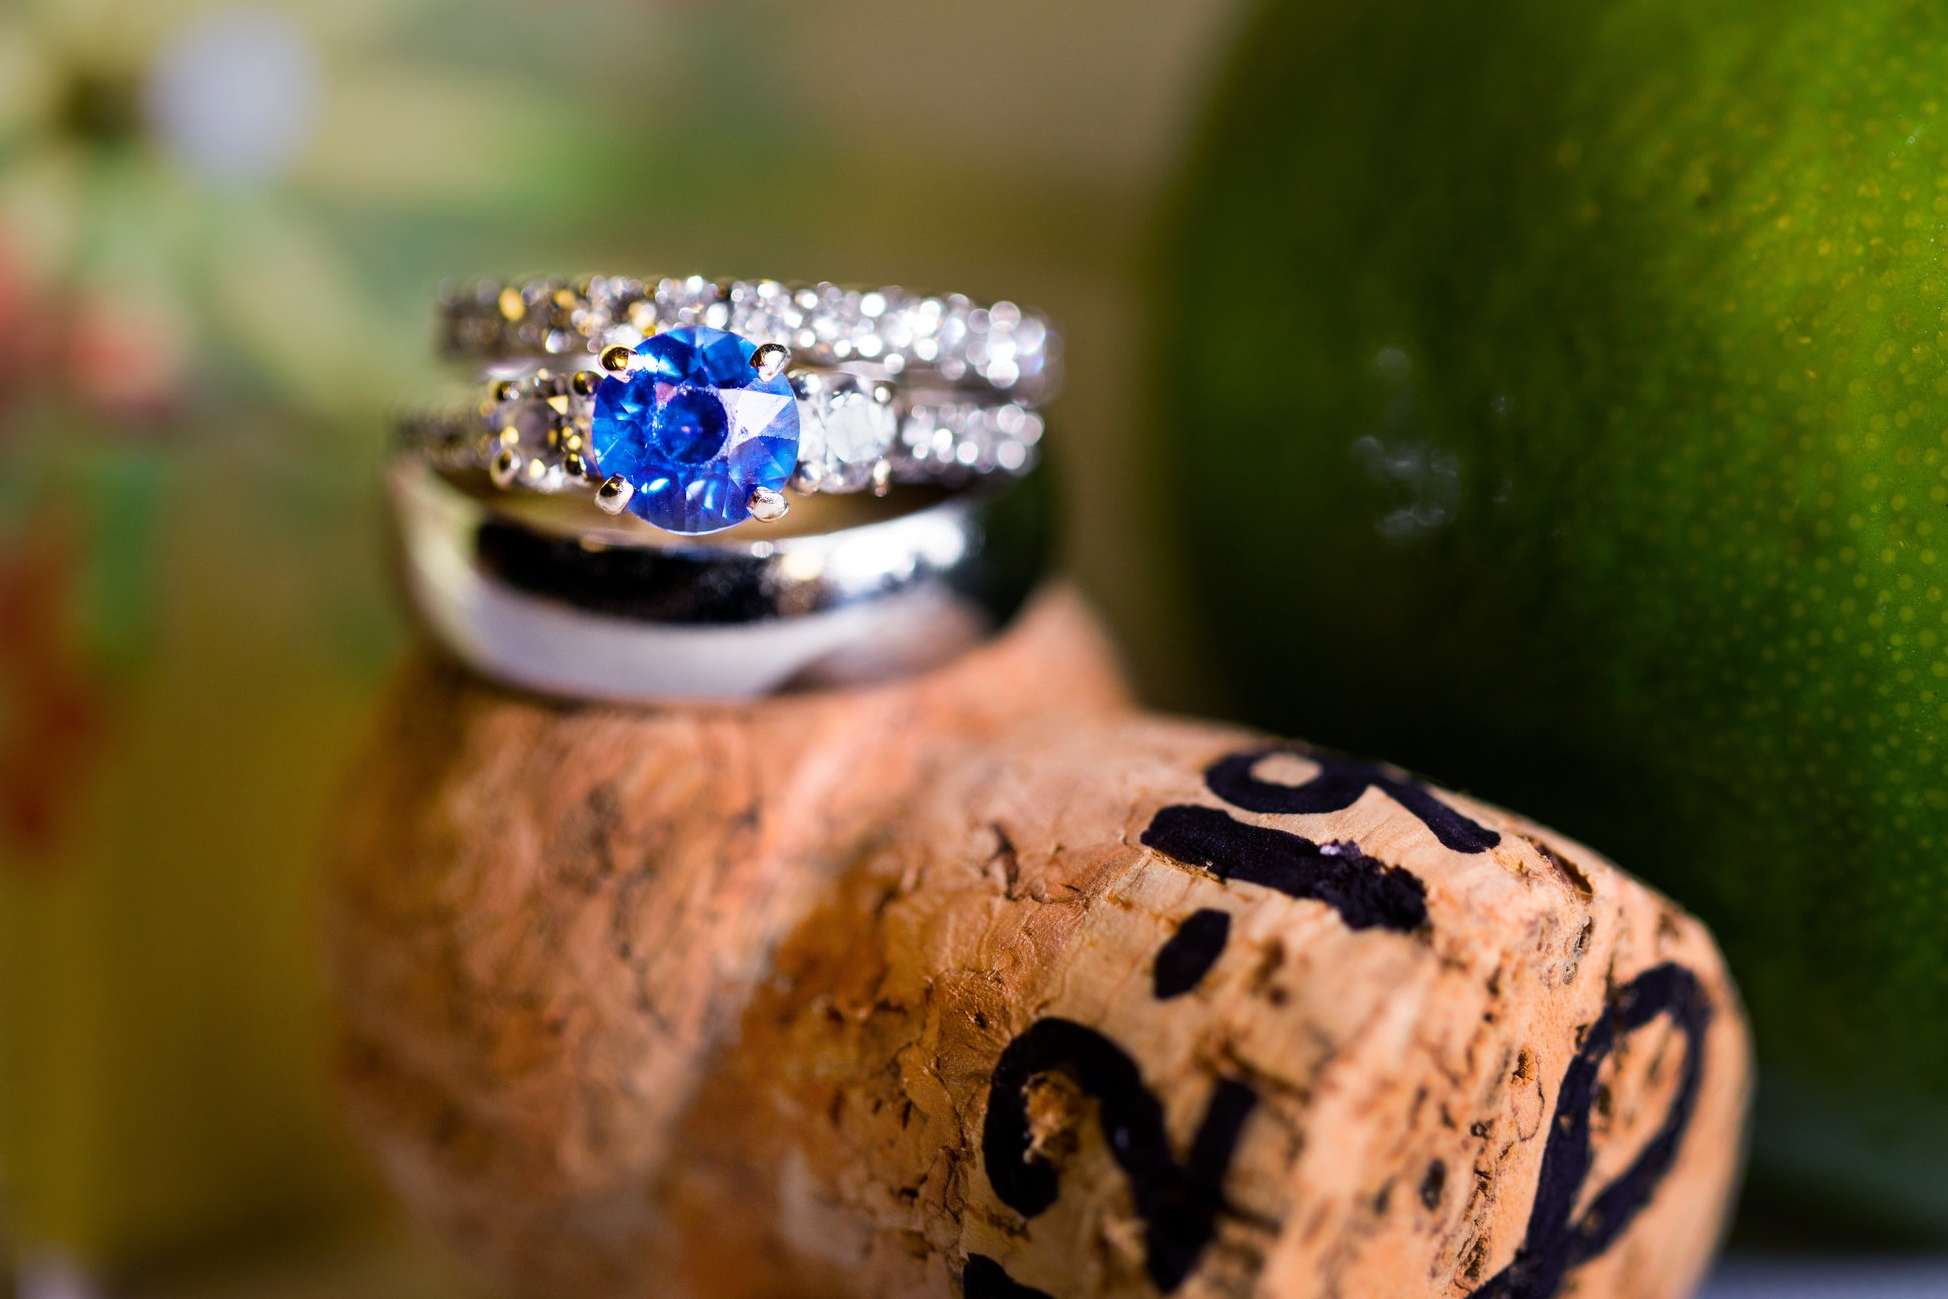 Blue-sapphire-engagement-ring-with-wedding-band-on-engraved-cork-during-key-west-wedding-details.jpg